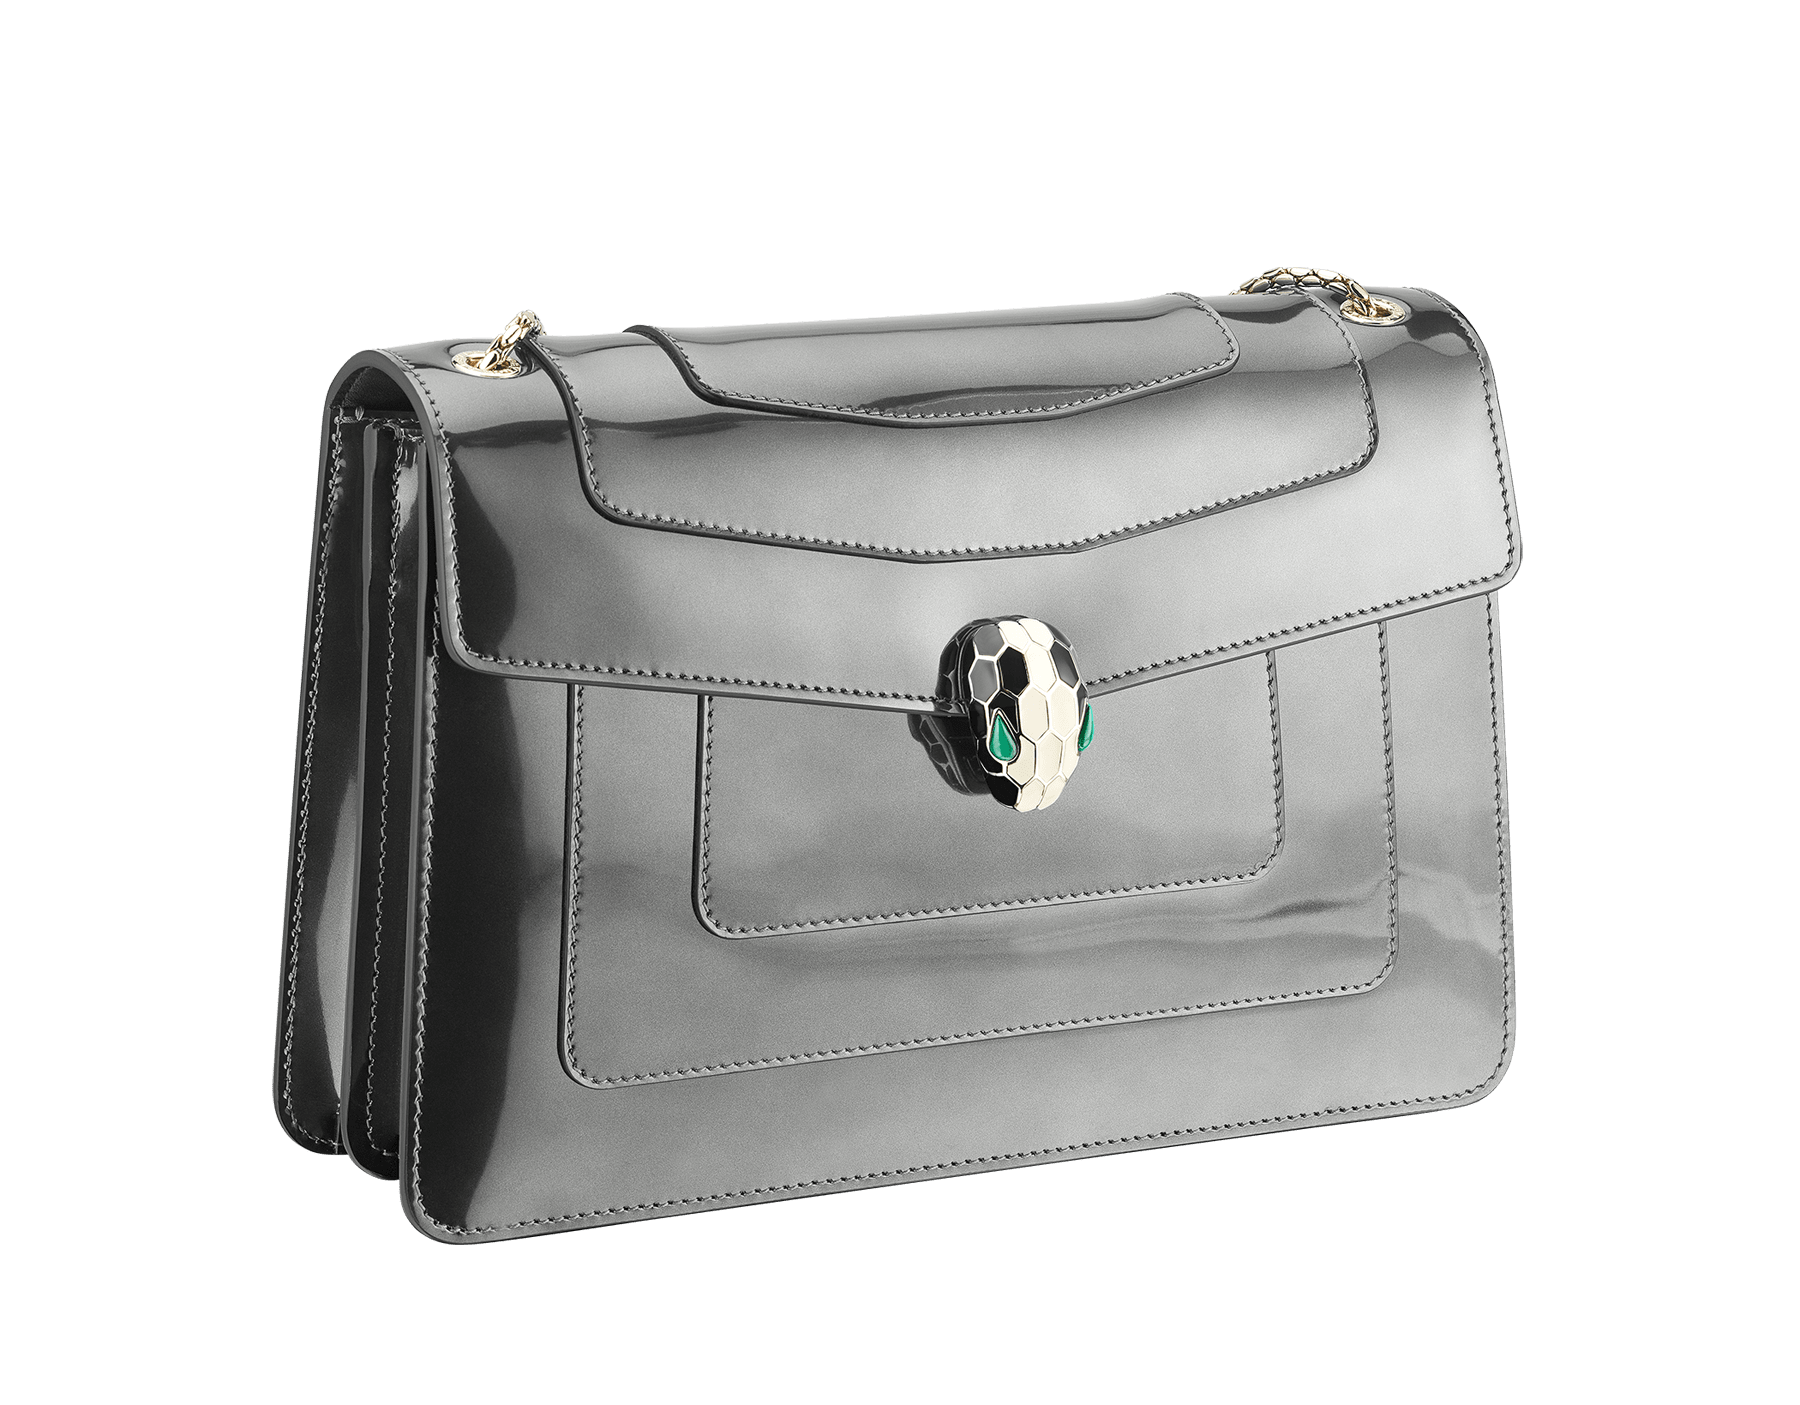 Flap cover bag Serpenti Forever in mirage shiny silver brushed metallic calf leather. Brass light gold plated snake head closure in black and white enamel with eyes in green malachite. 39793 image 2